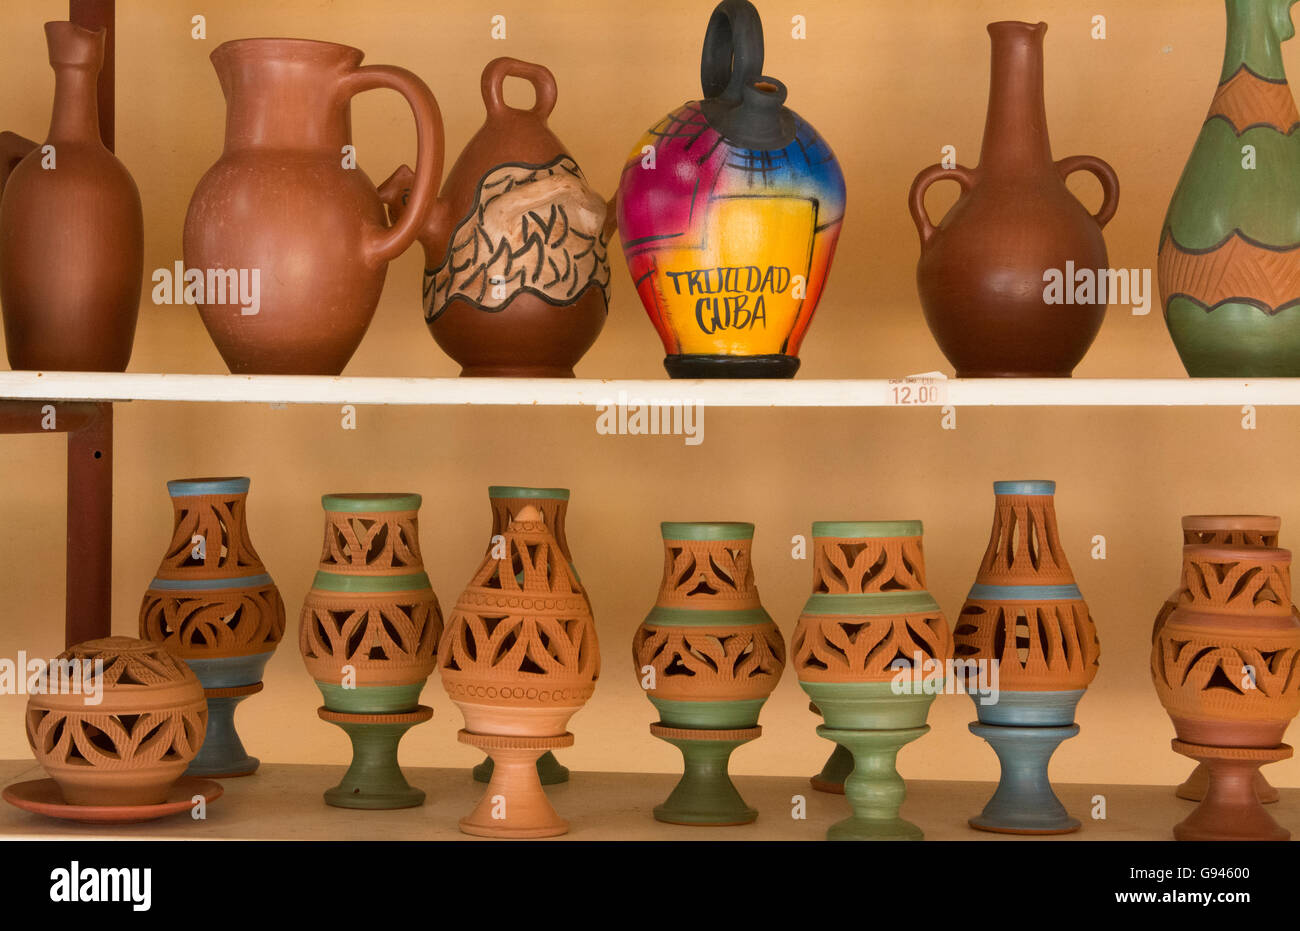 Trinidad Cuba clay pottery business selling vases and artwork - Stock Image